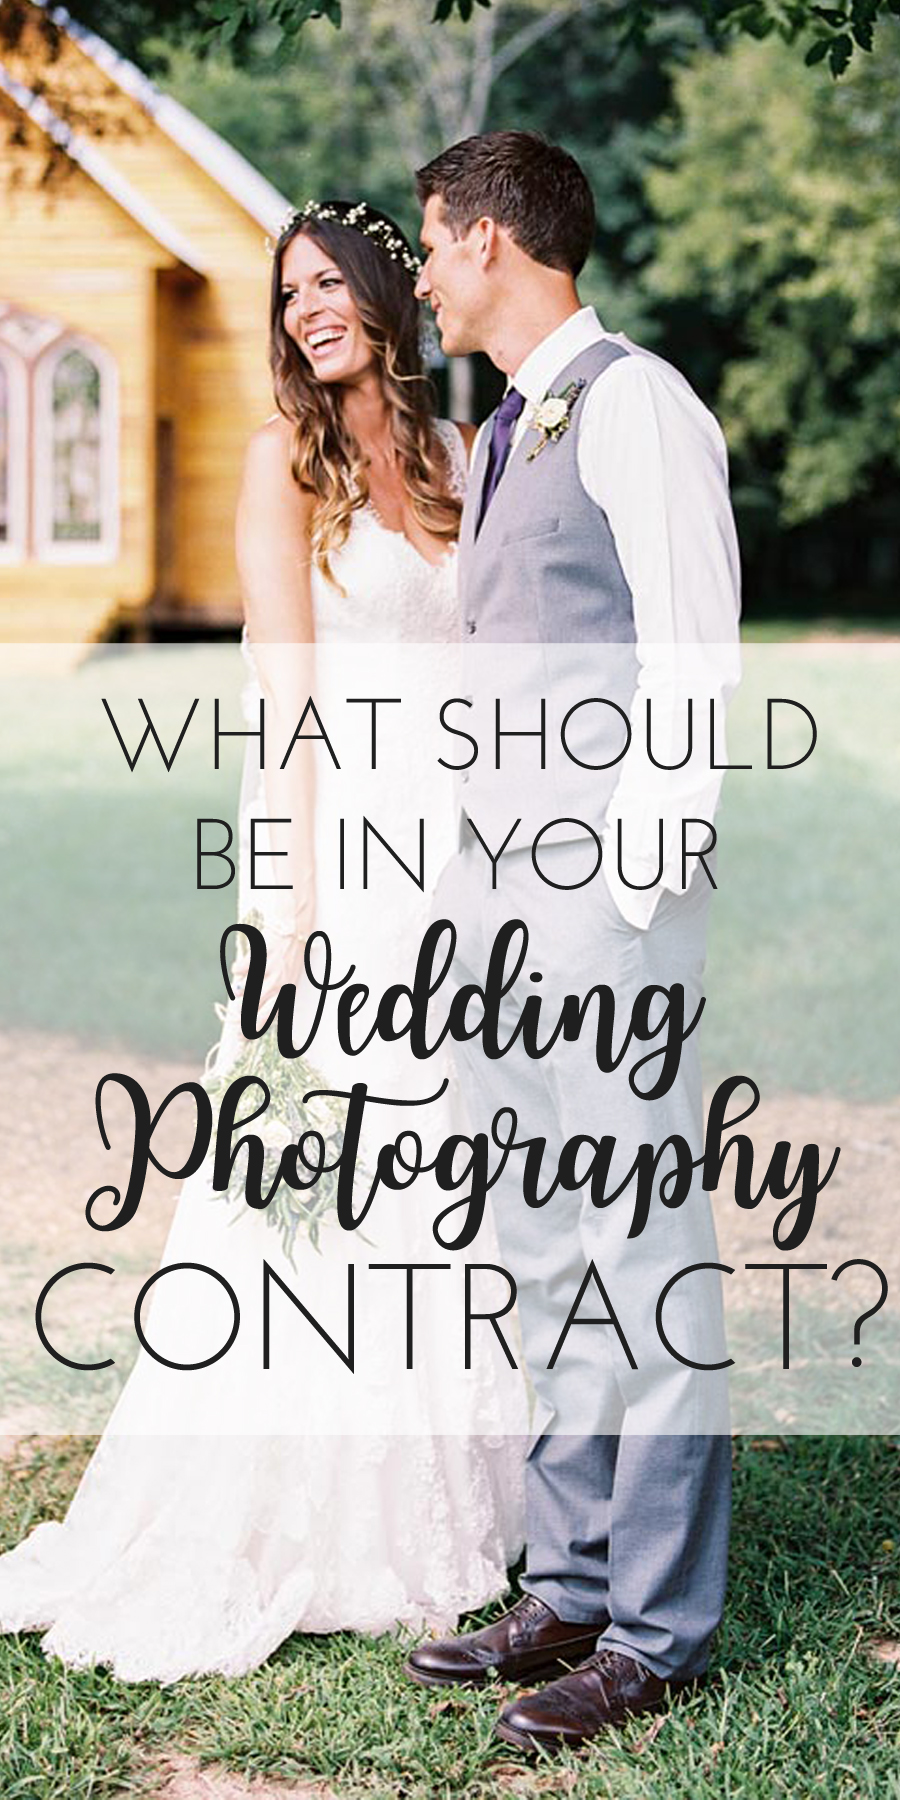 what should be in your wedding photography contract.jpg